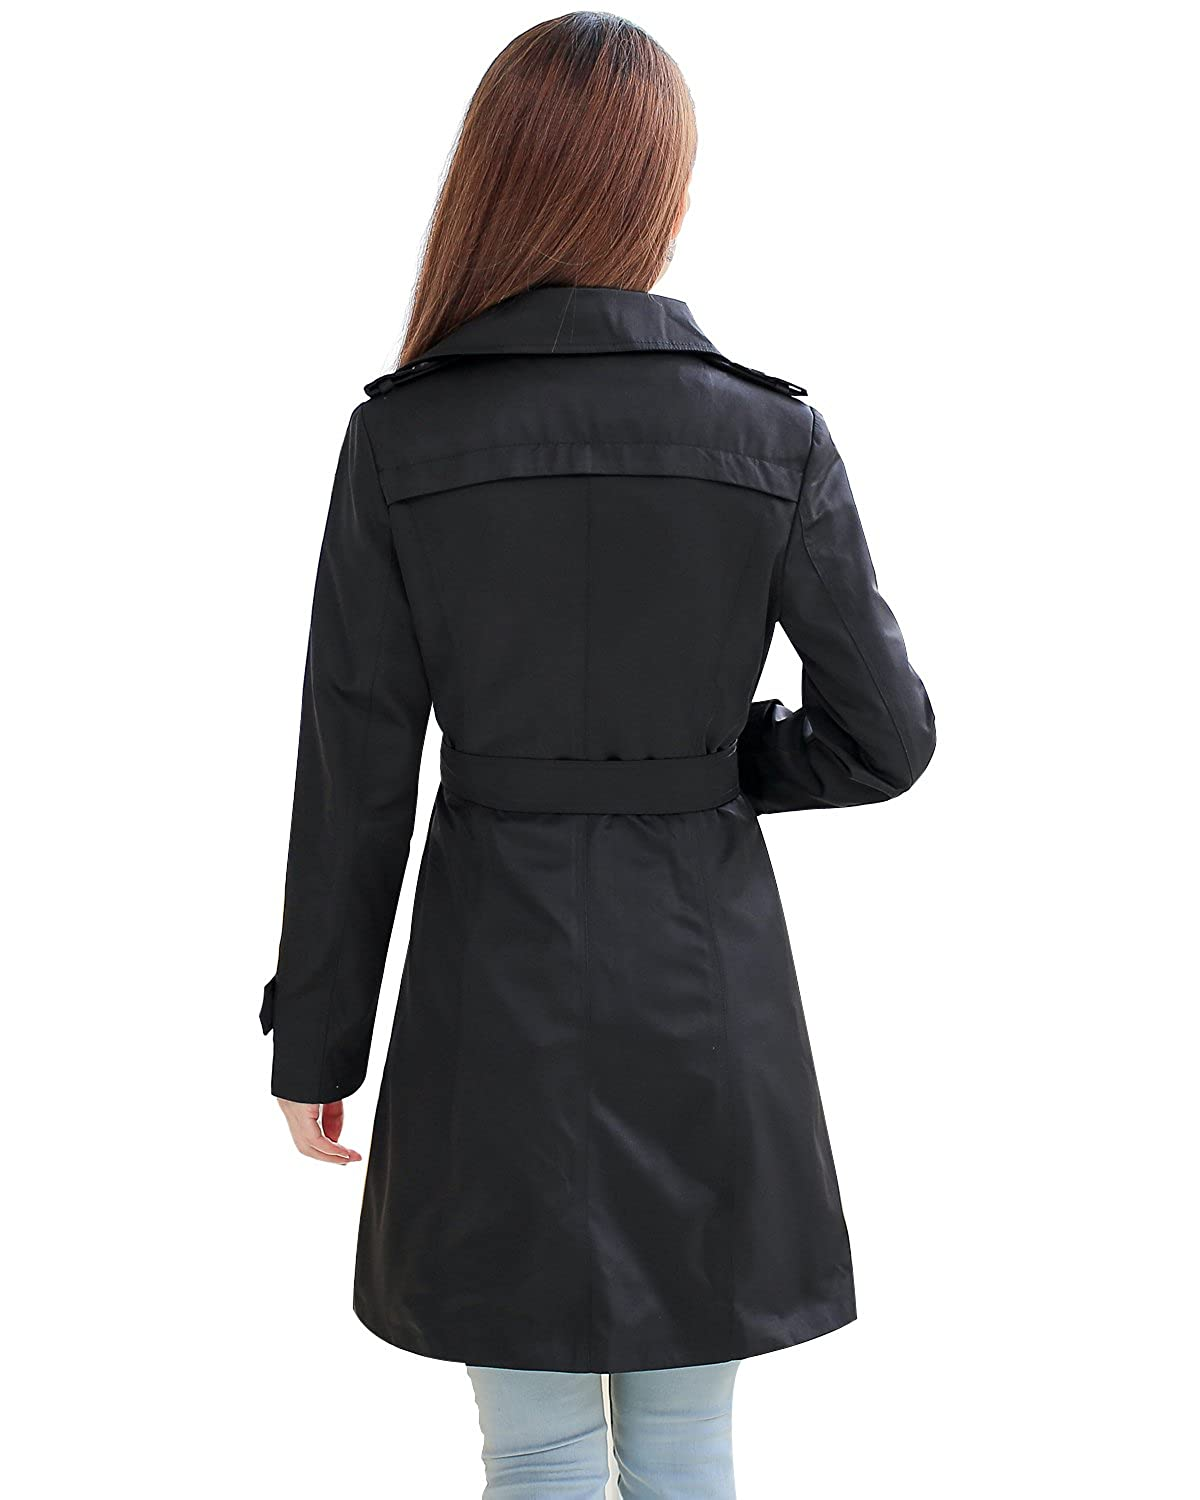 NANJUN Womens Double Breasted Trench Coat Chelsea Tailoring Overcoat